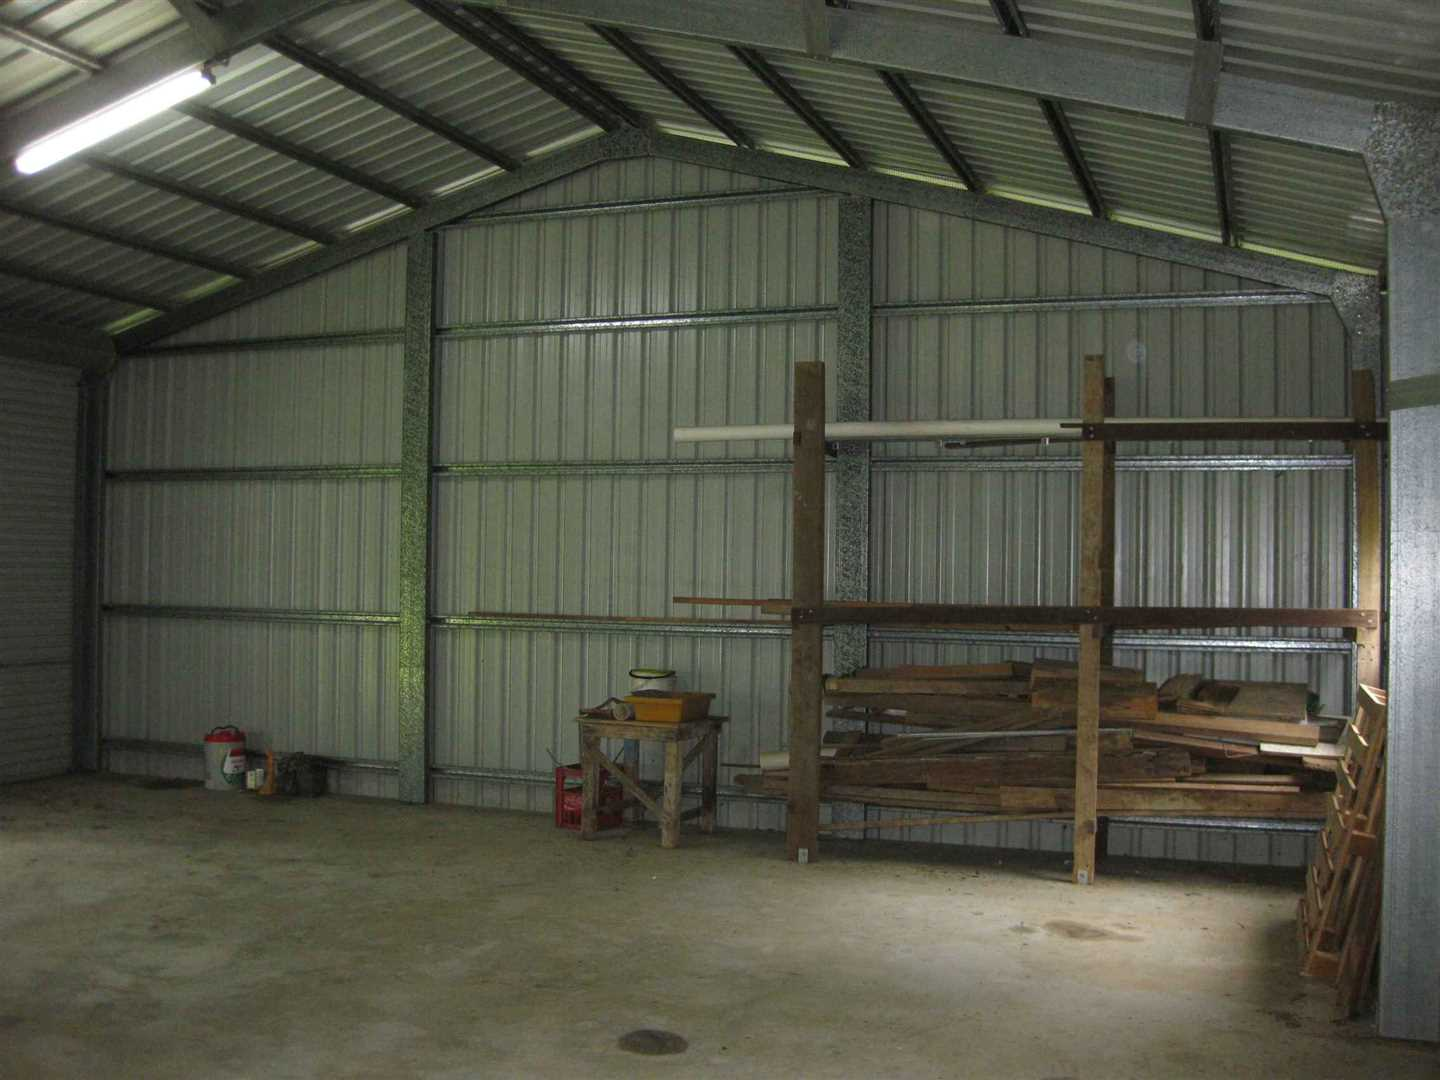 Inside view of part of shed, photo 1